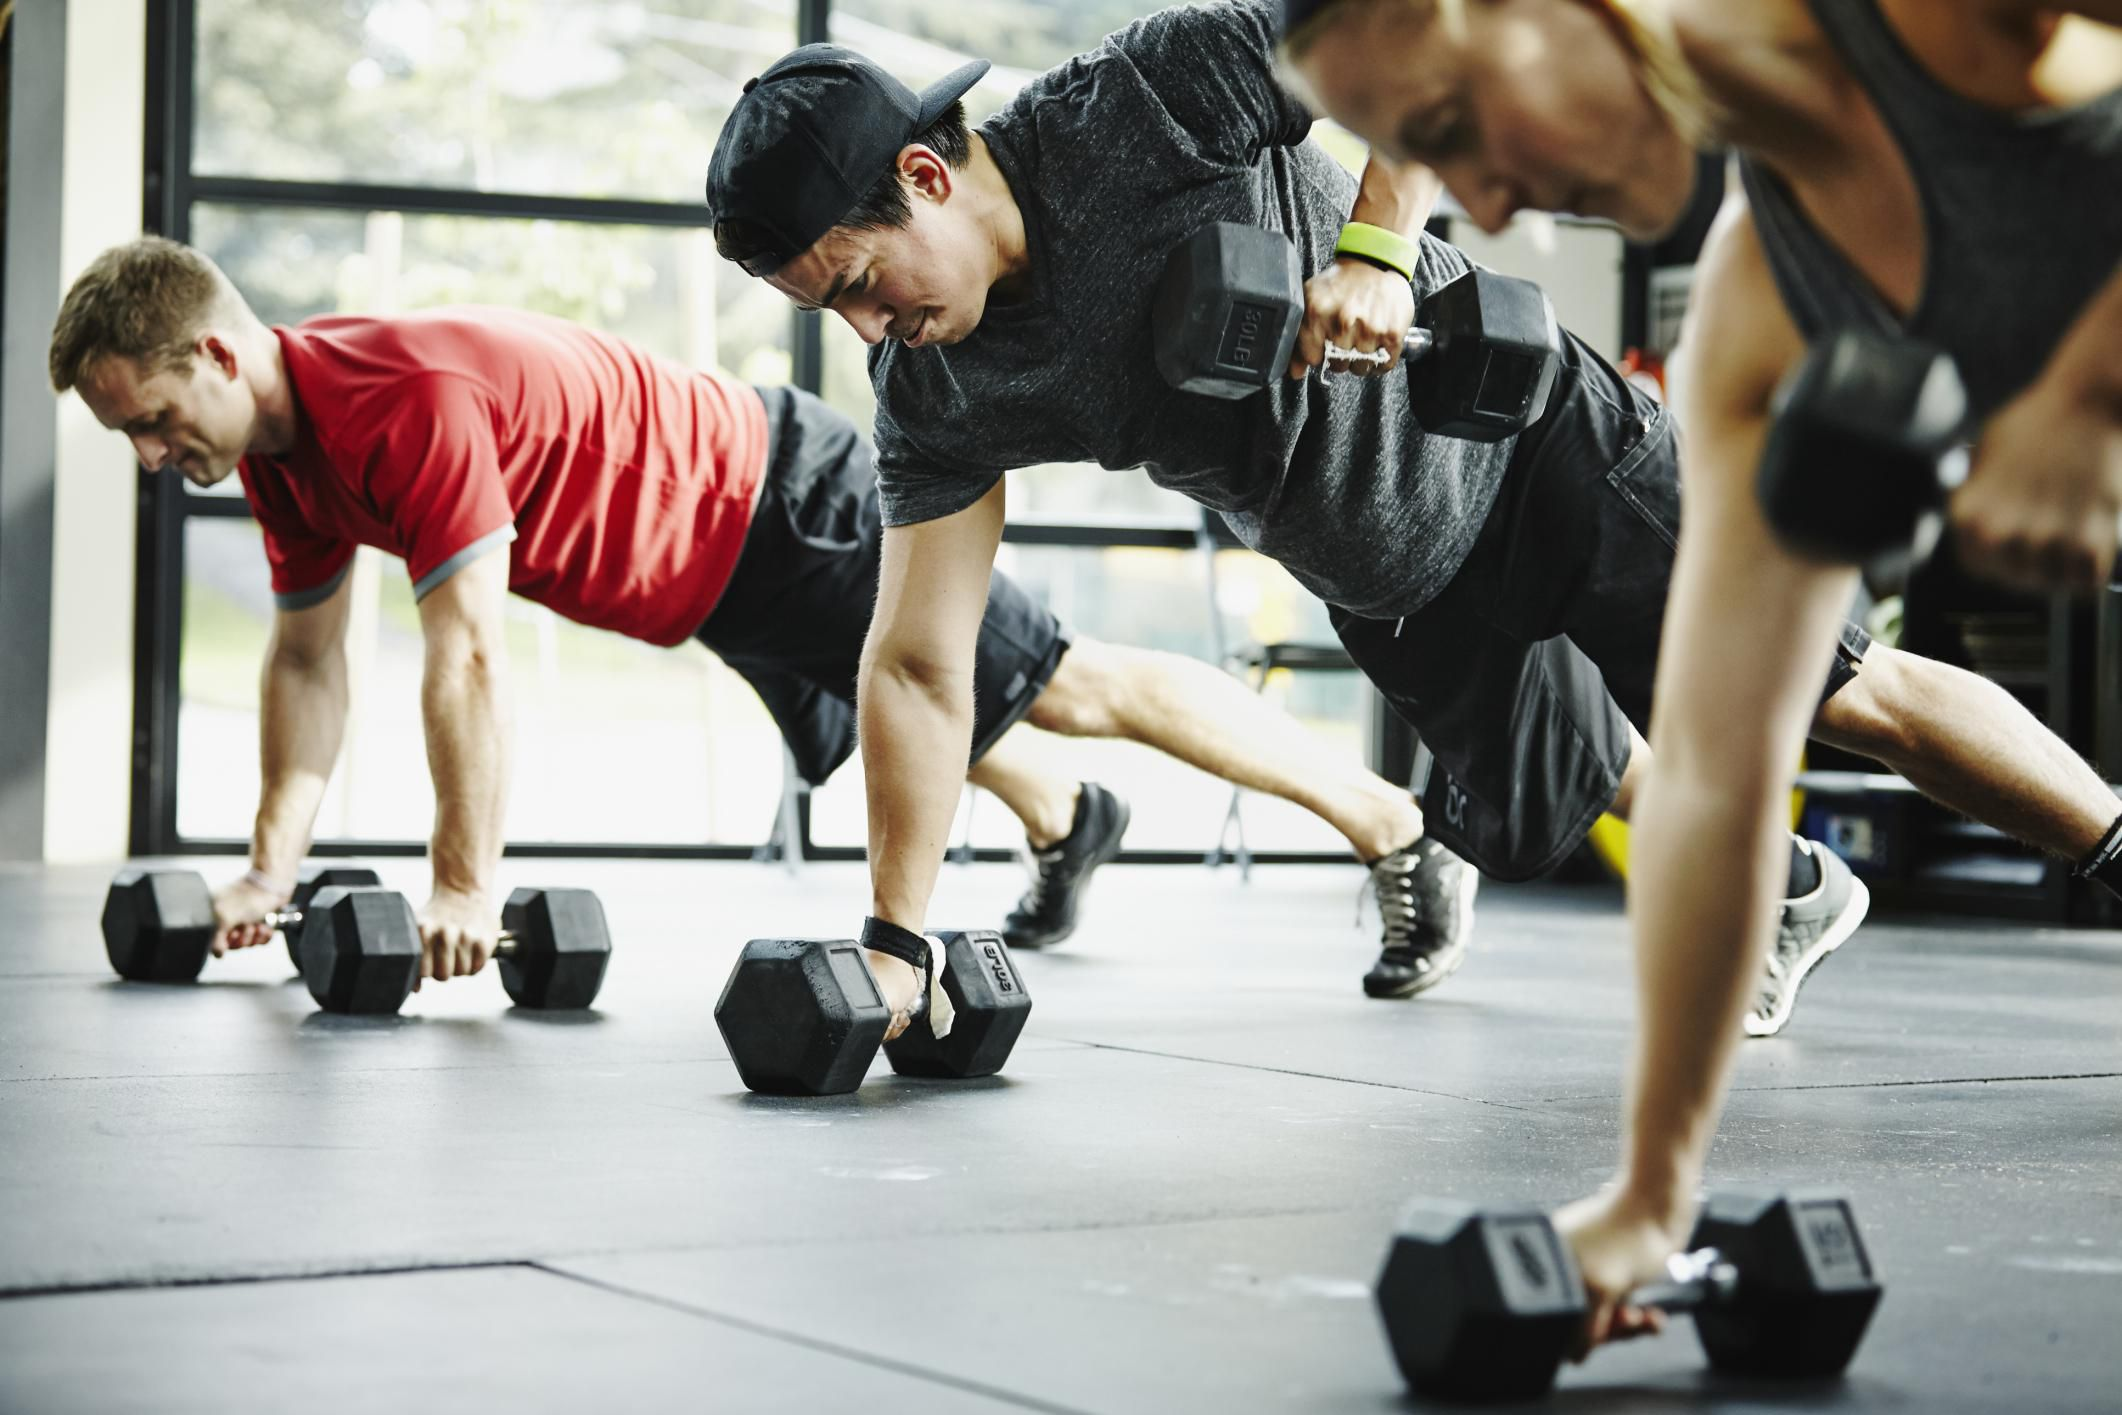 How To Change Your Strength Training Workouts Superset Workout Get Results Even Faster With This Intense Circuit